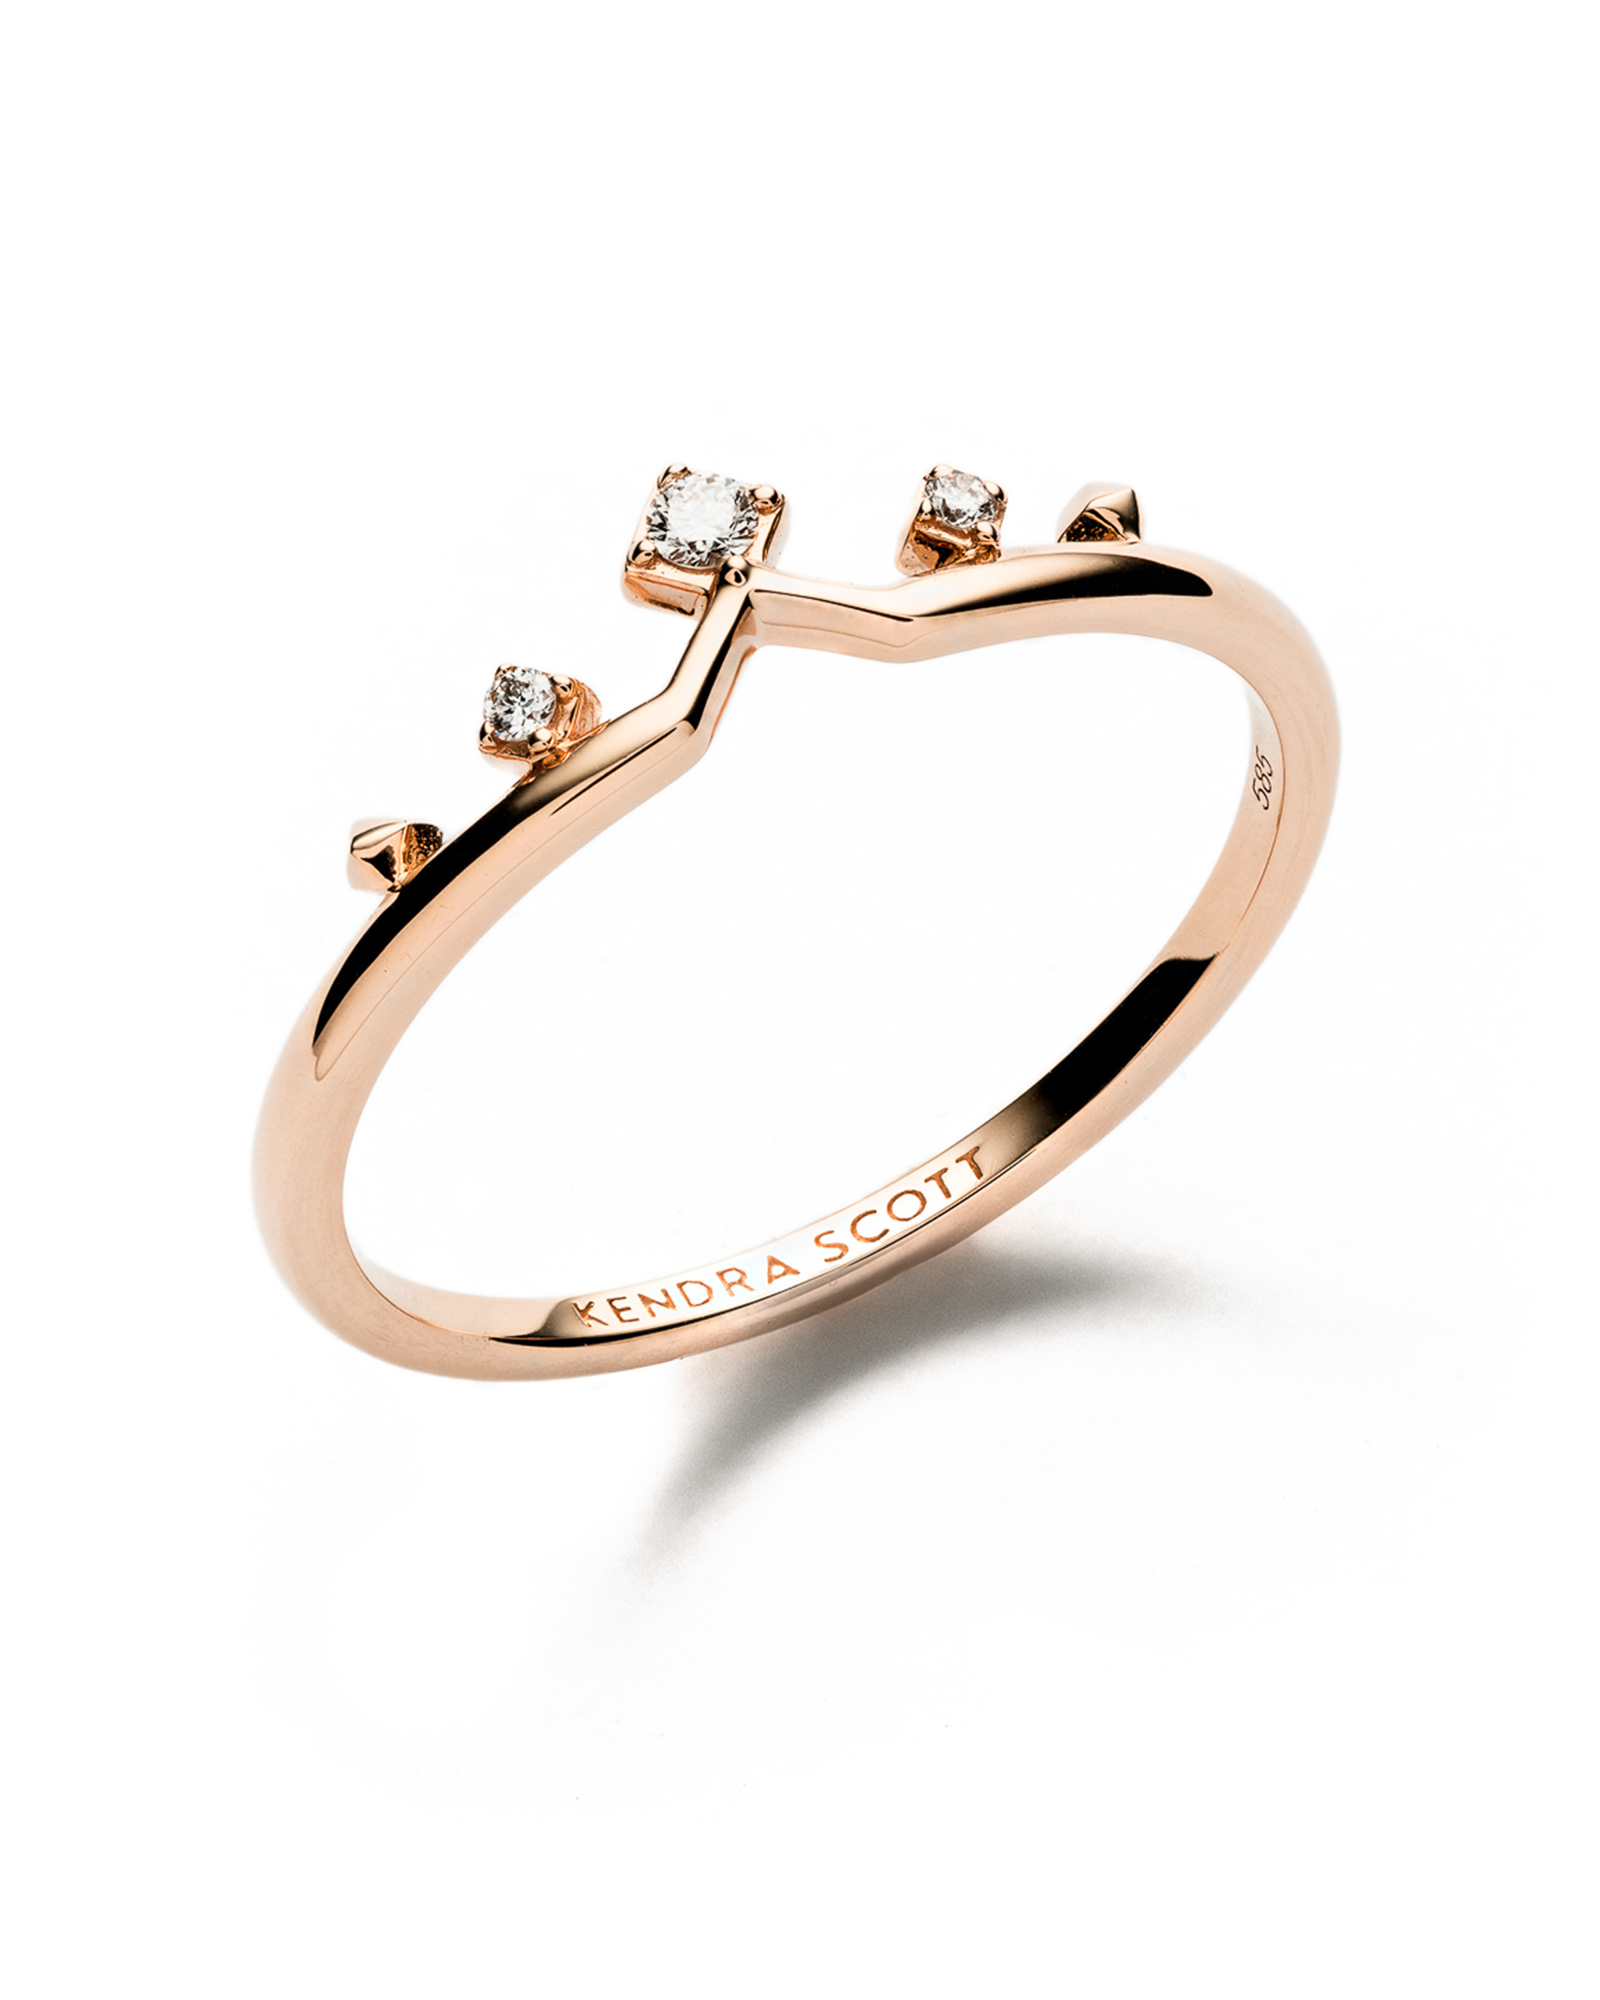 Michelle 14k Rose Gold Band Ring in White Diamond - 7